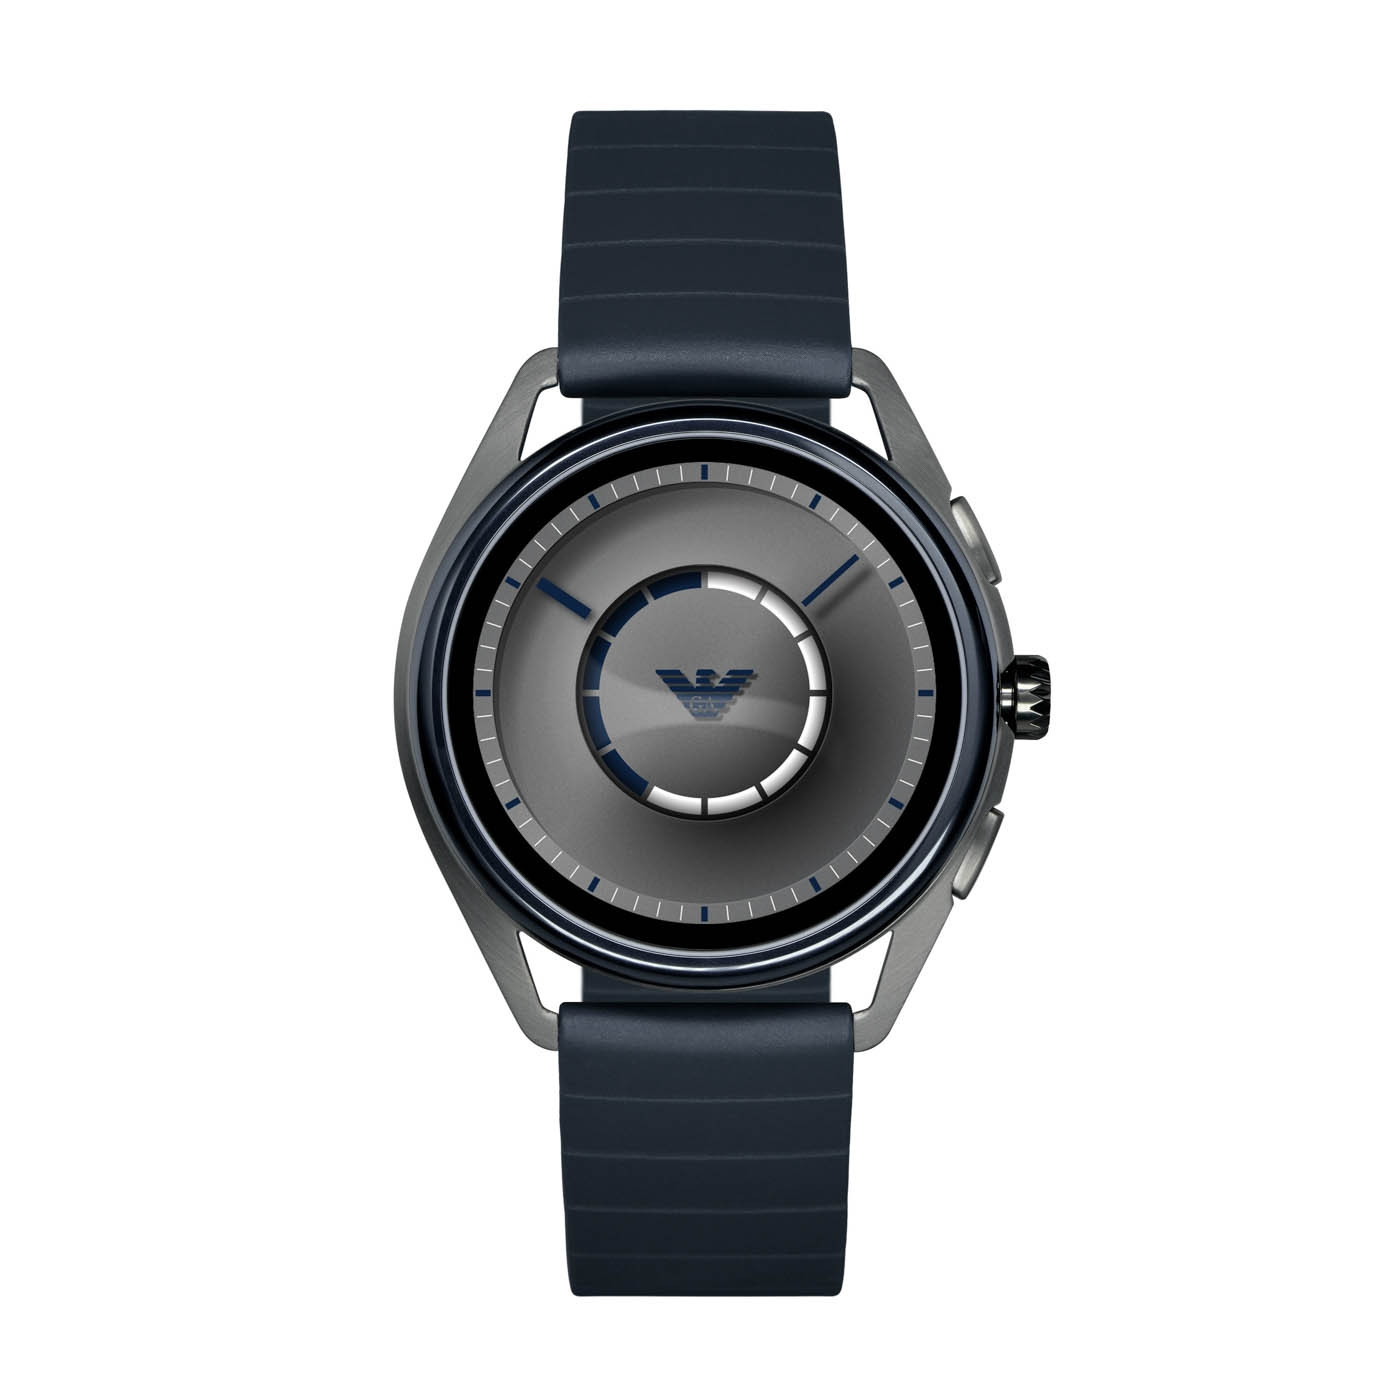 Emporio Armani Connected Matteo Gen 4 Display Smartwatch ART5008